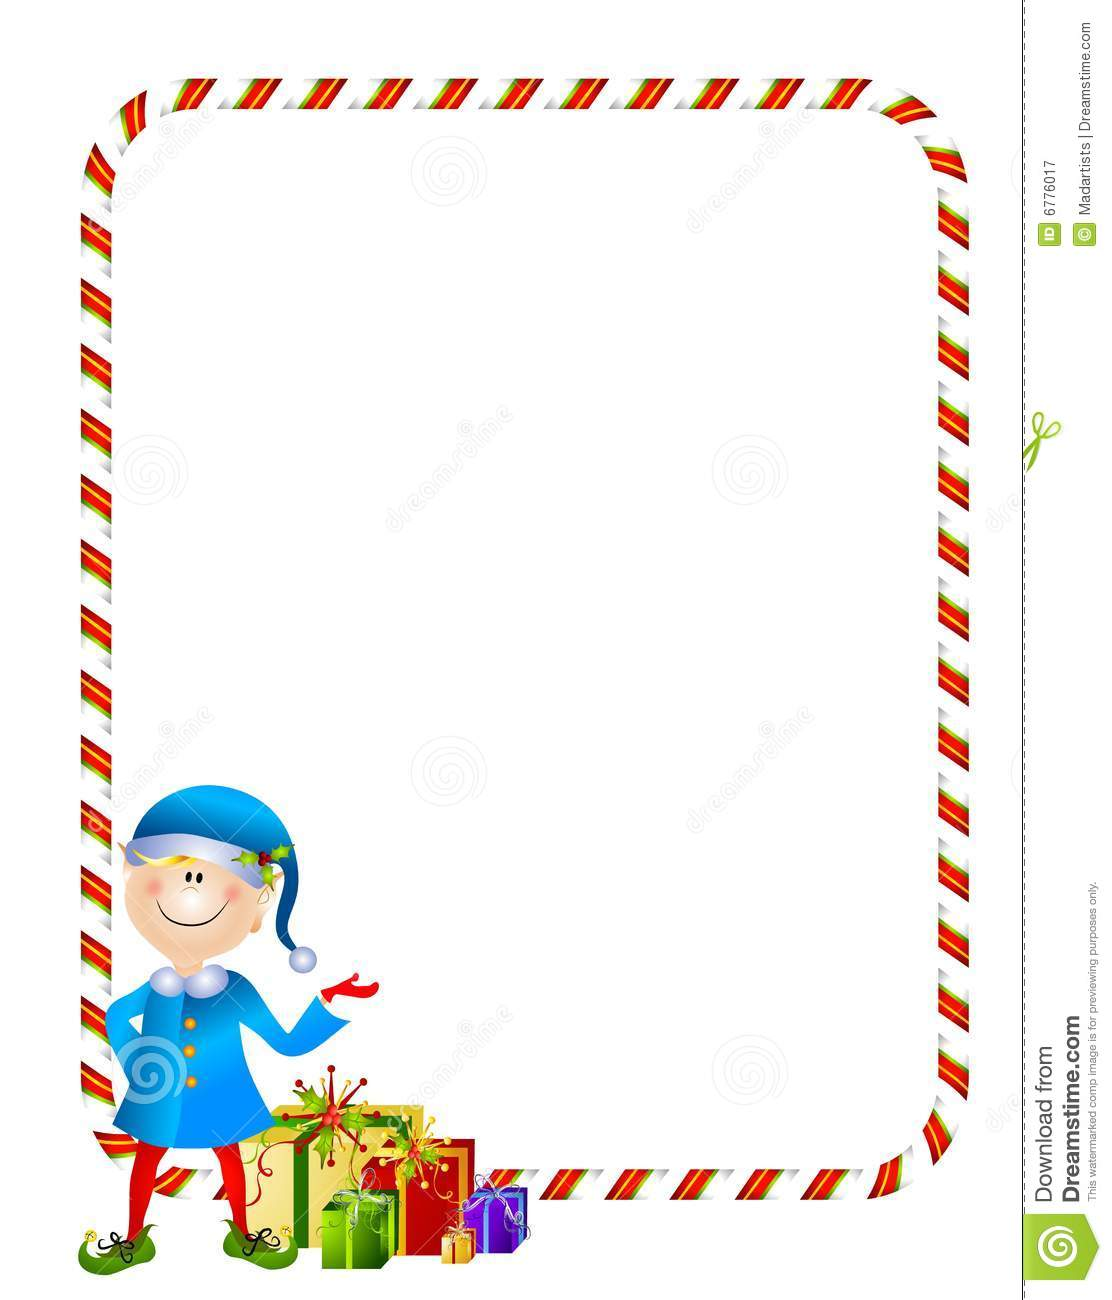 Xmas elf with gifts border stock vector illustration of - Christmas elf on the shelf wallpaper ...